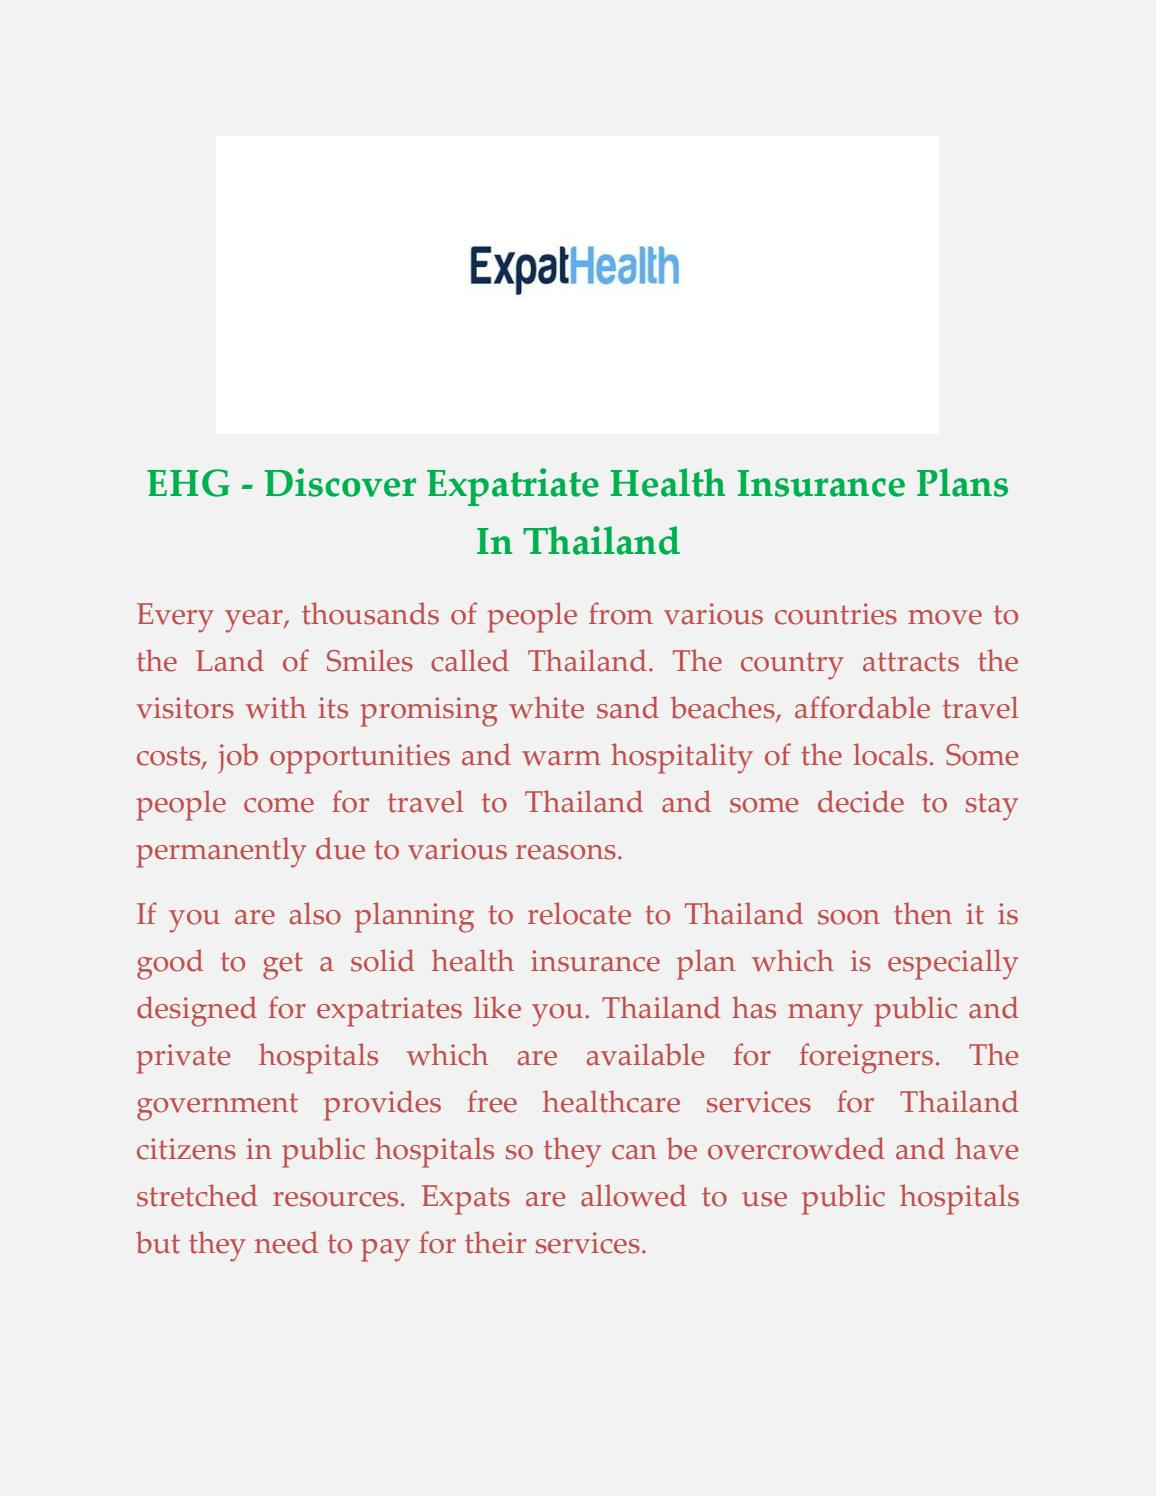 Health Insurance Cover in Thailand by expathealthgroup - issuu